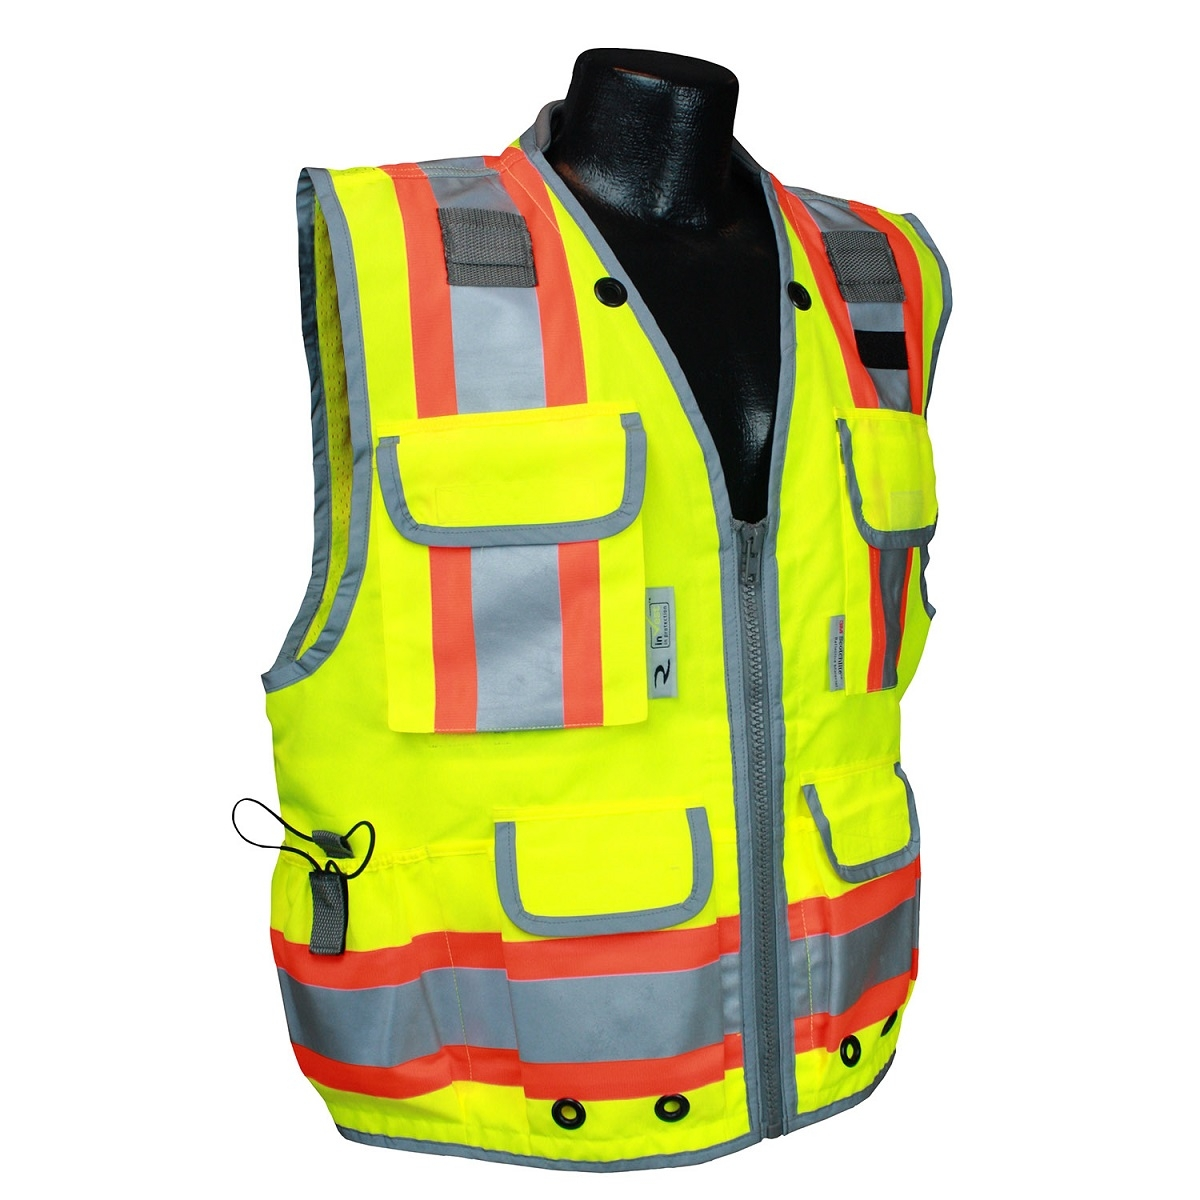 Radians Sv55 2zgd Heavy Duty Two Tone Engineer Safety Vest